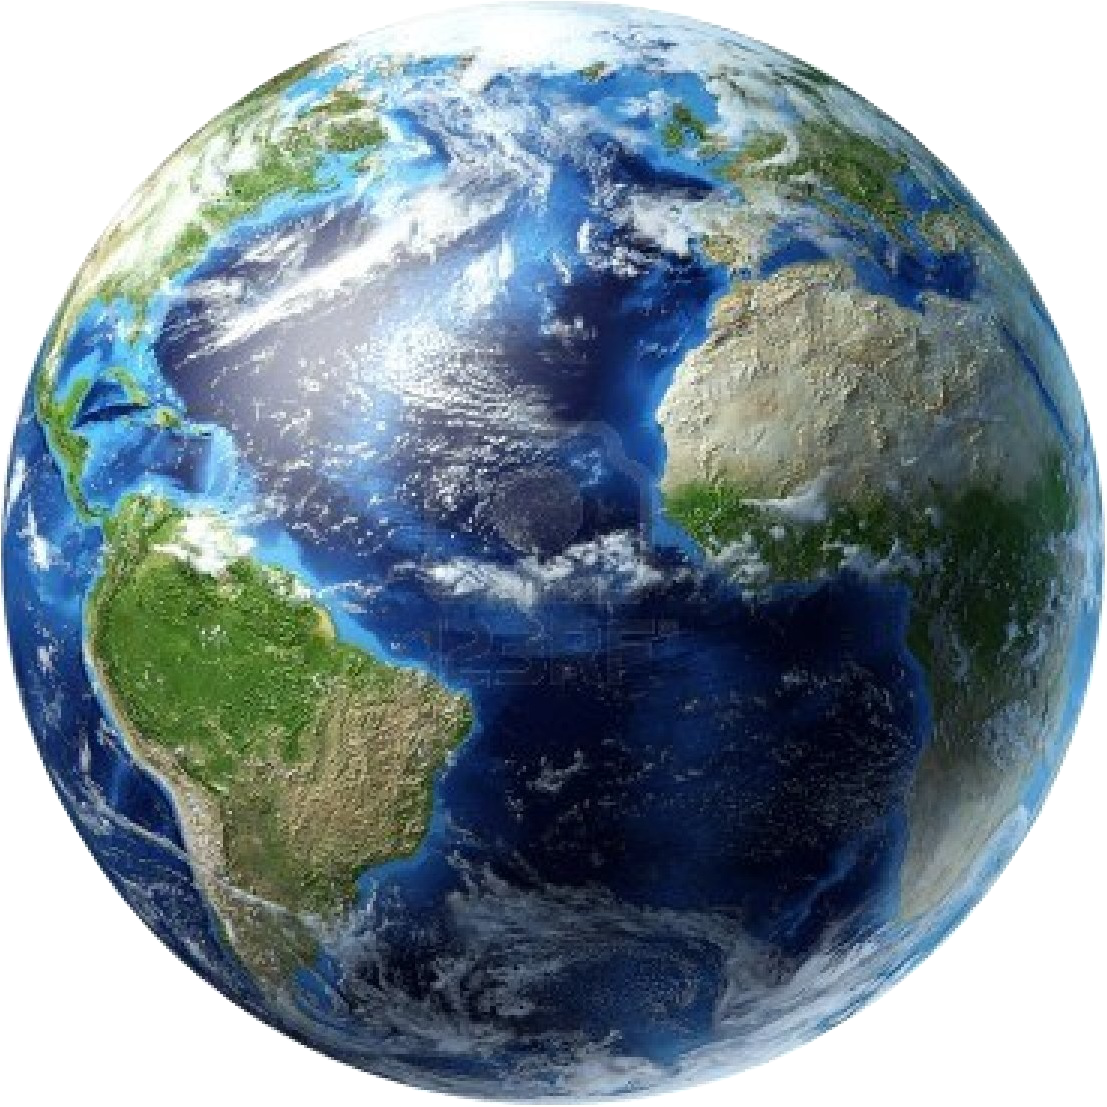 HQ Earth Wallpapers | File 1617.87Kb